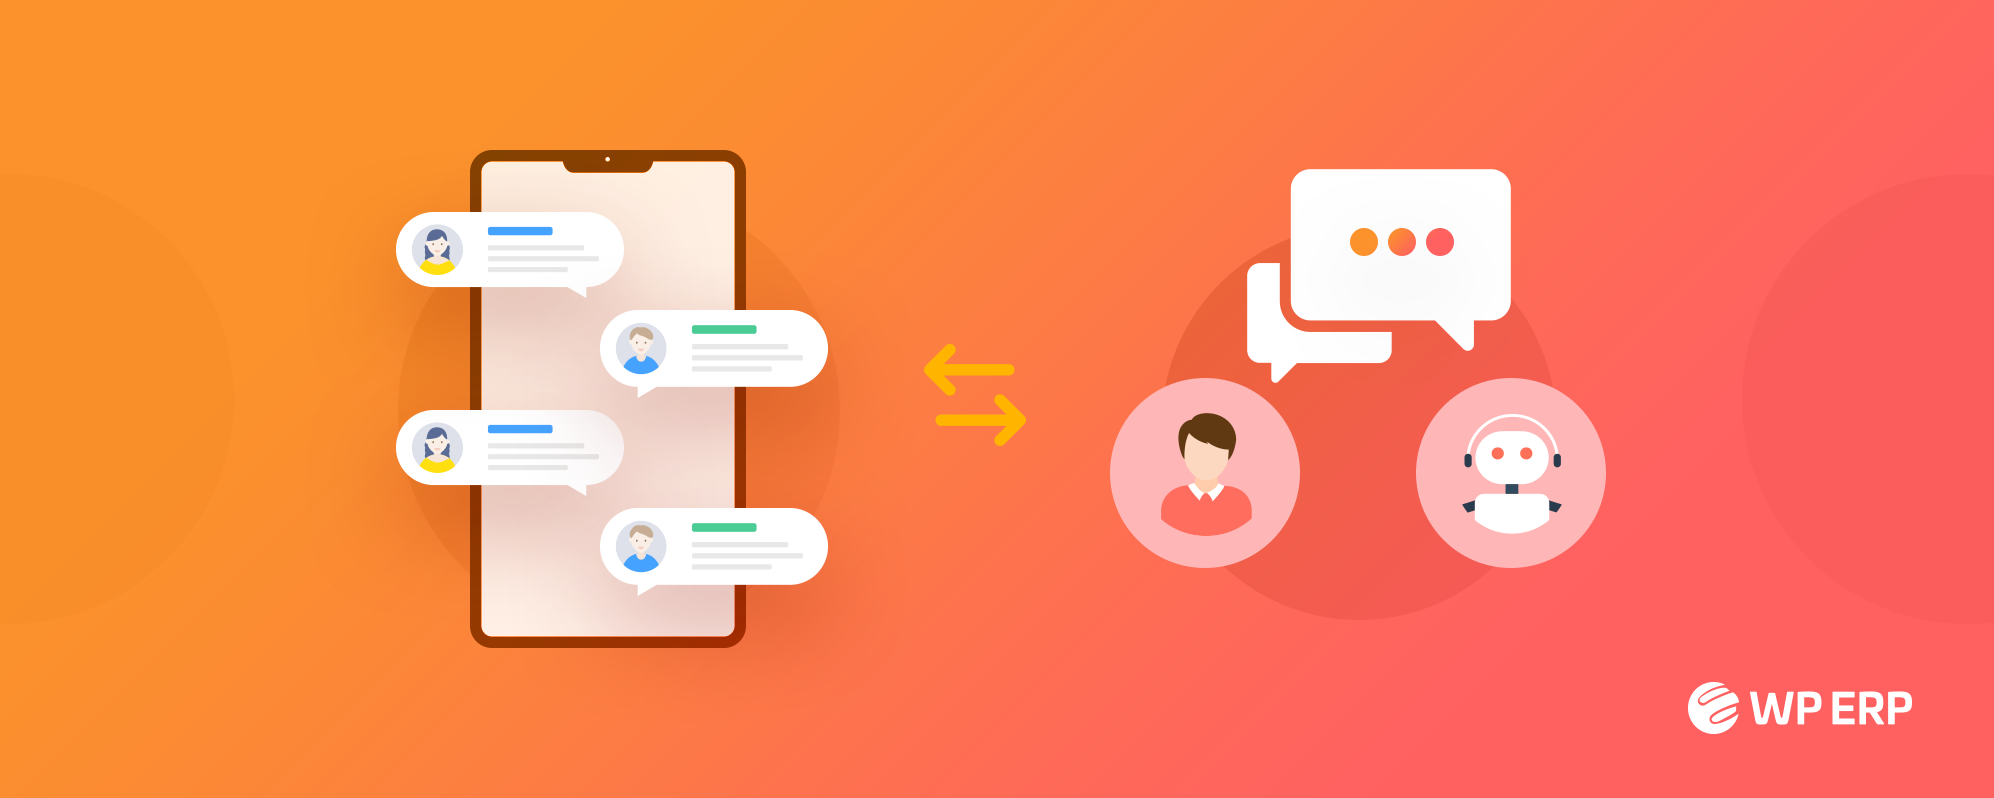 Messenger Marketing: How To Use Chatbots To Grow Your Audience - WordPress ERP